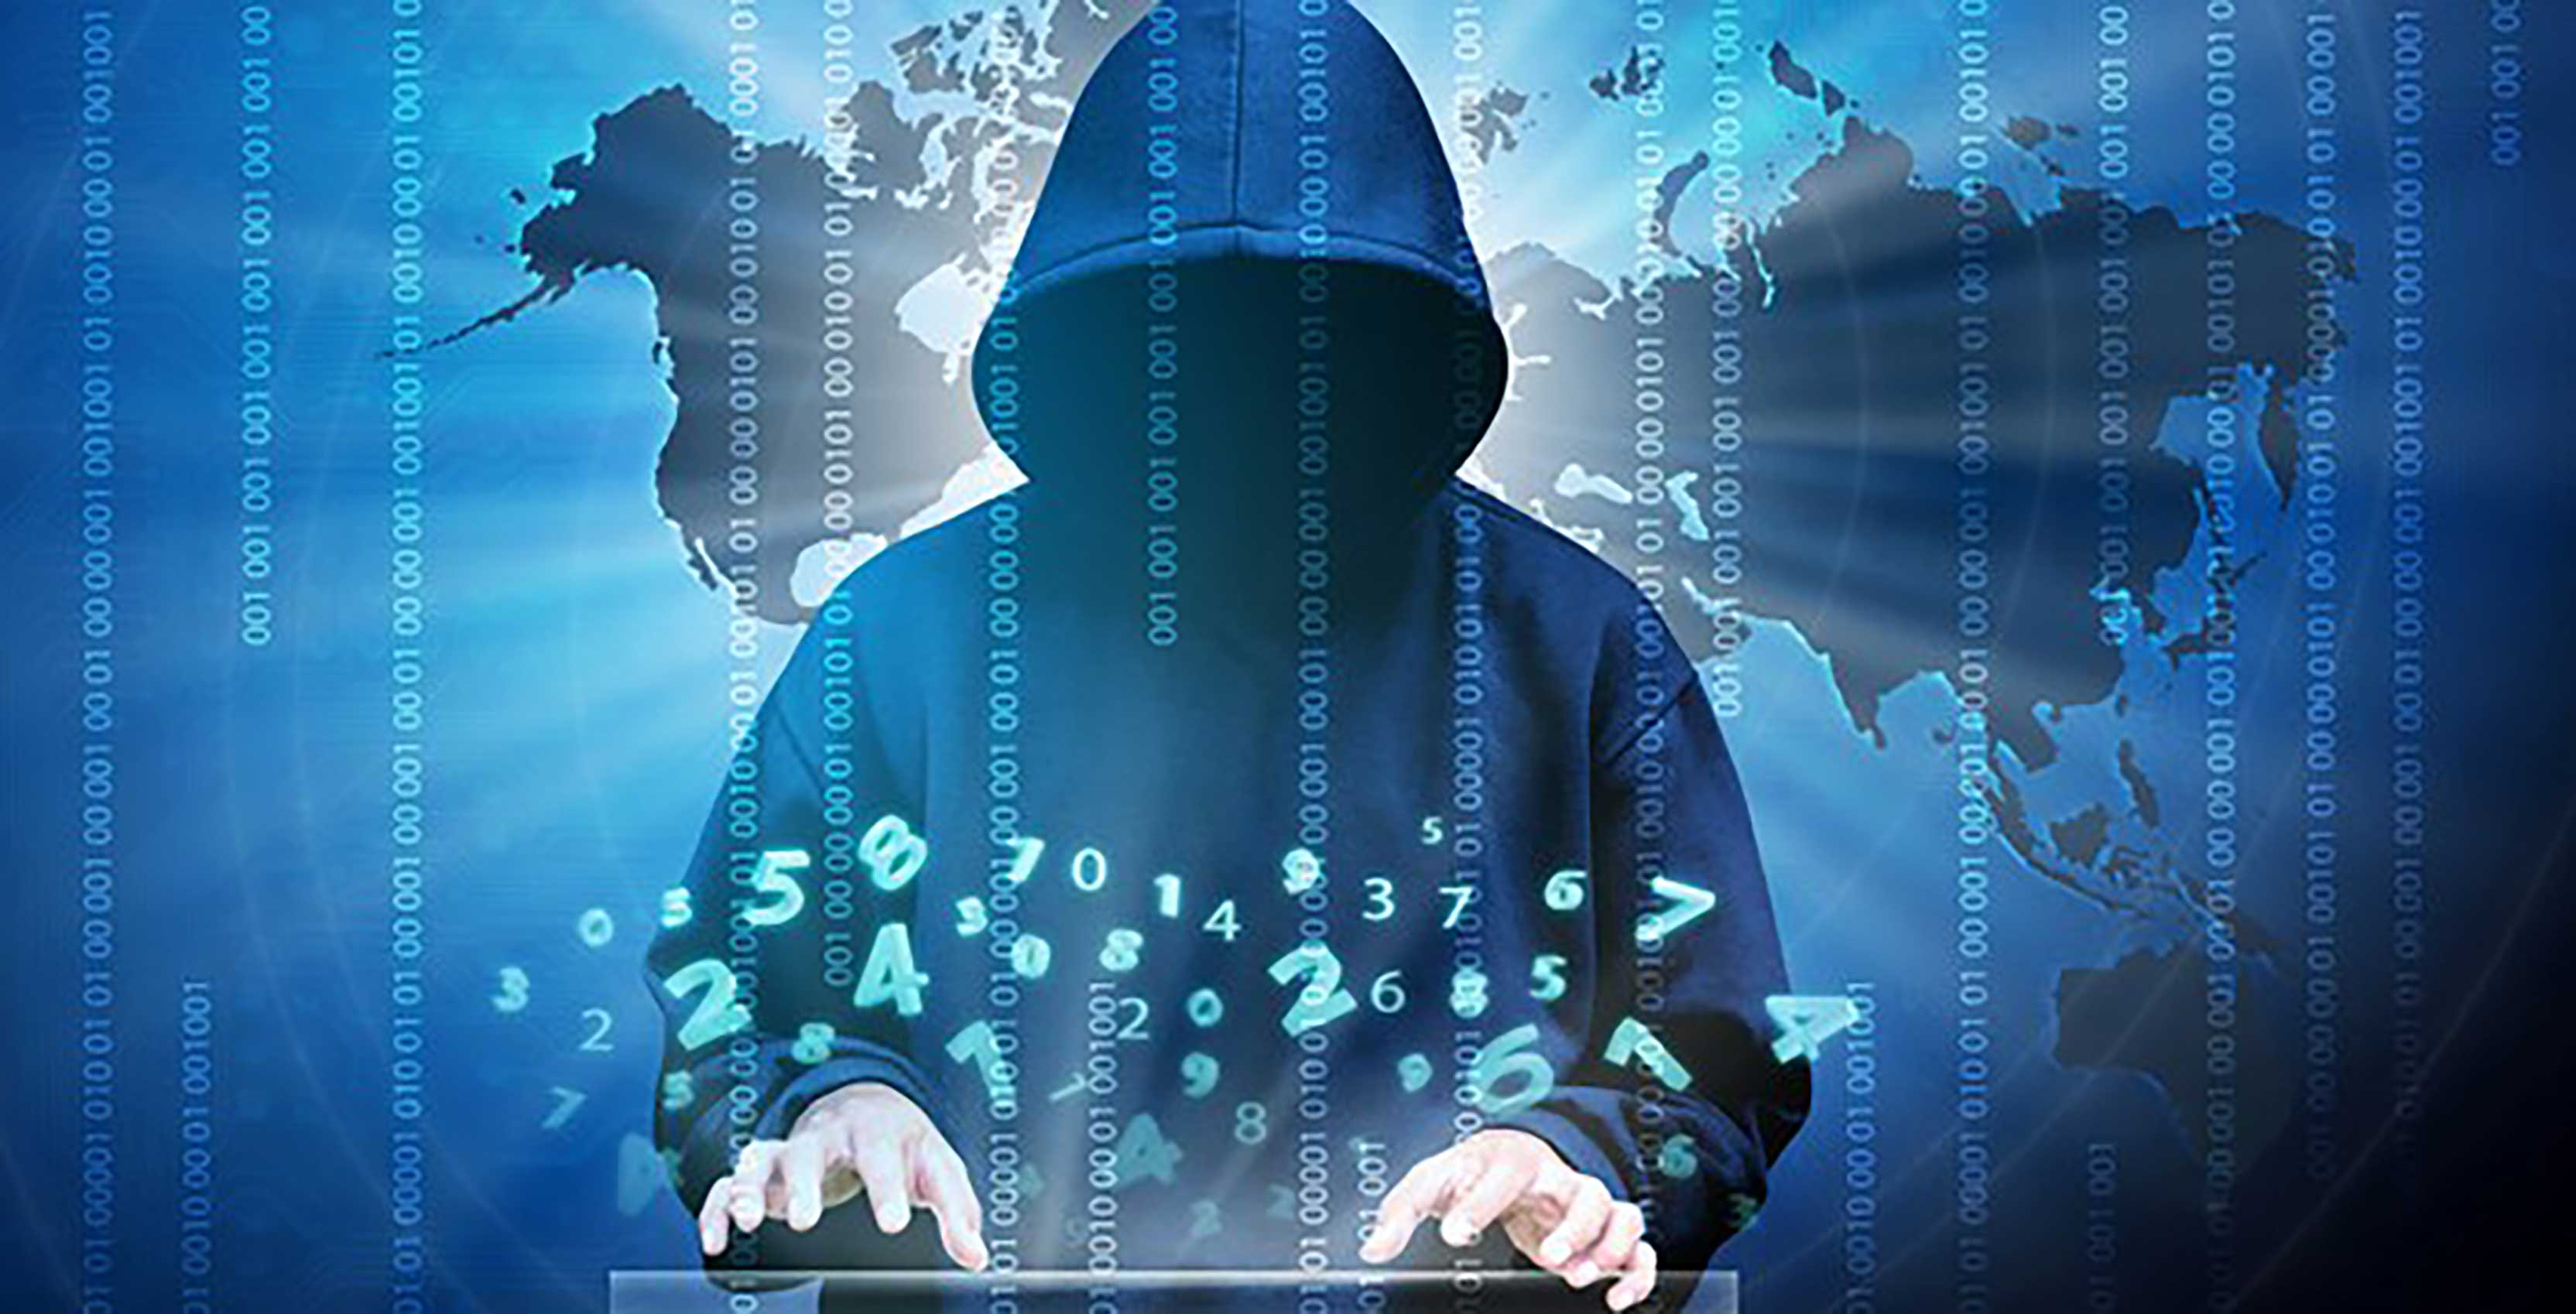 Man in hood cybercrime